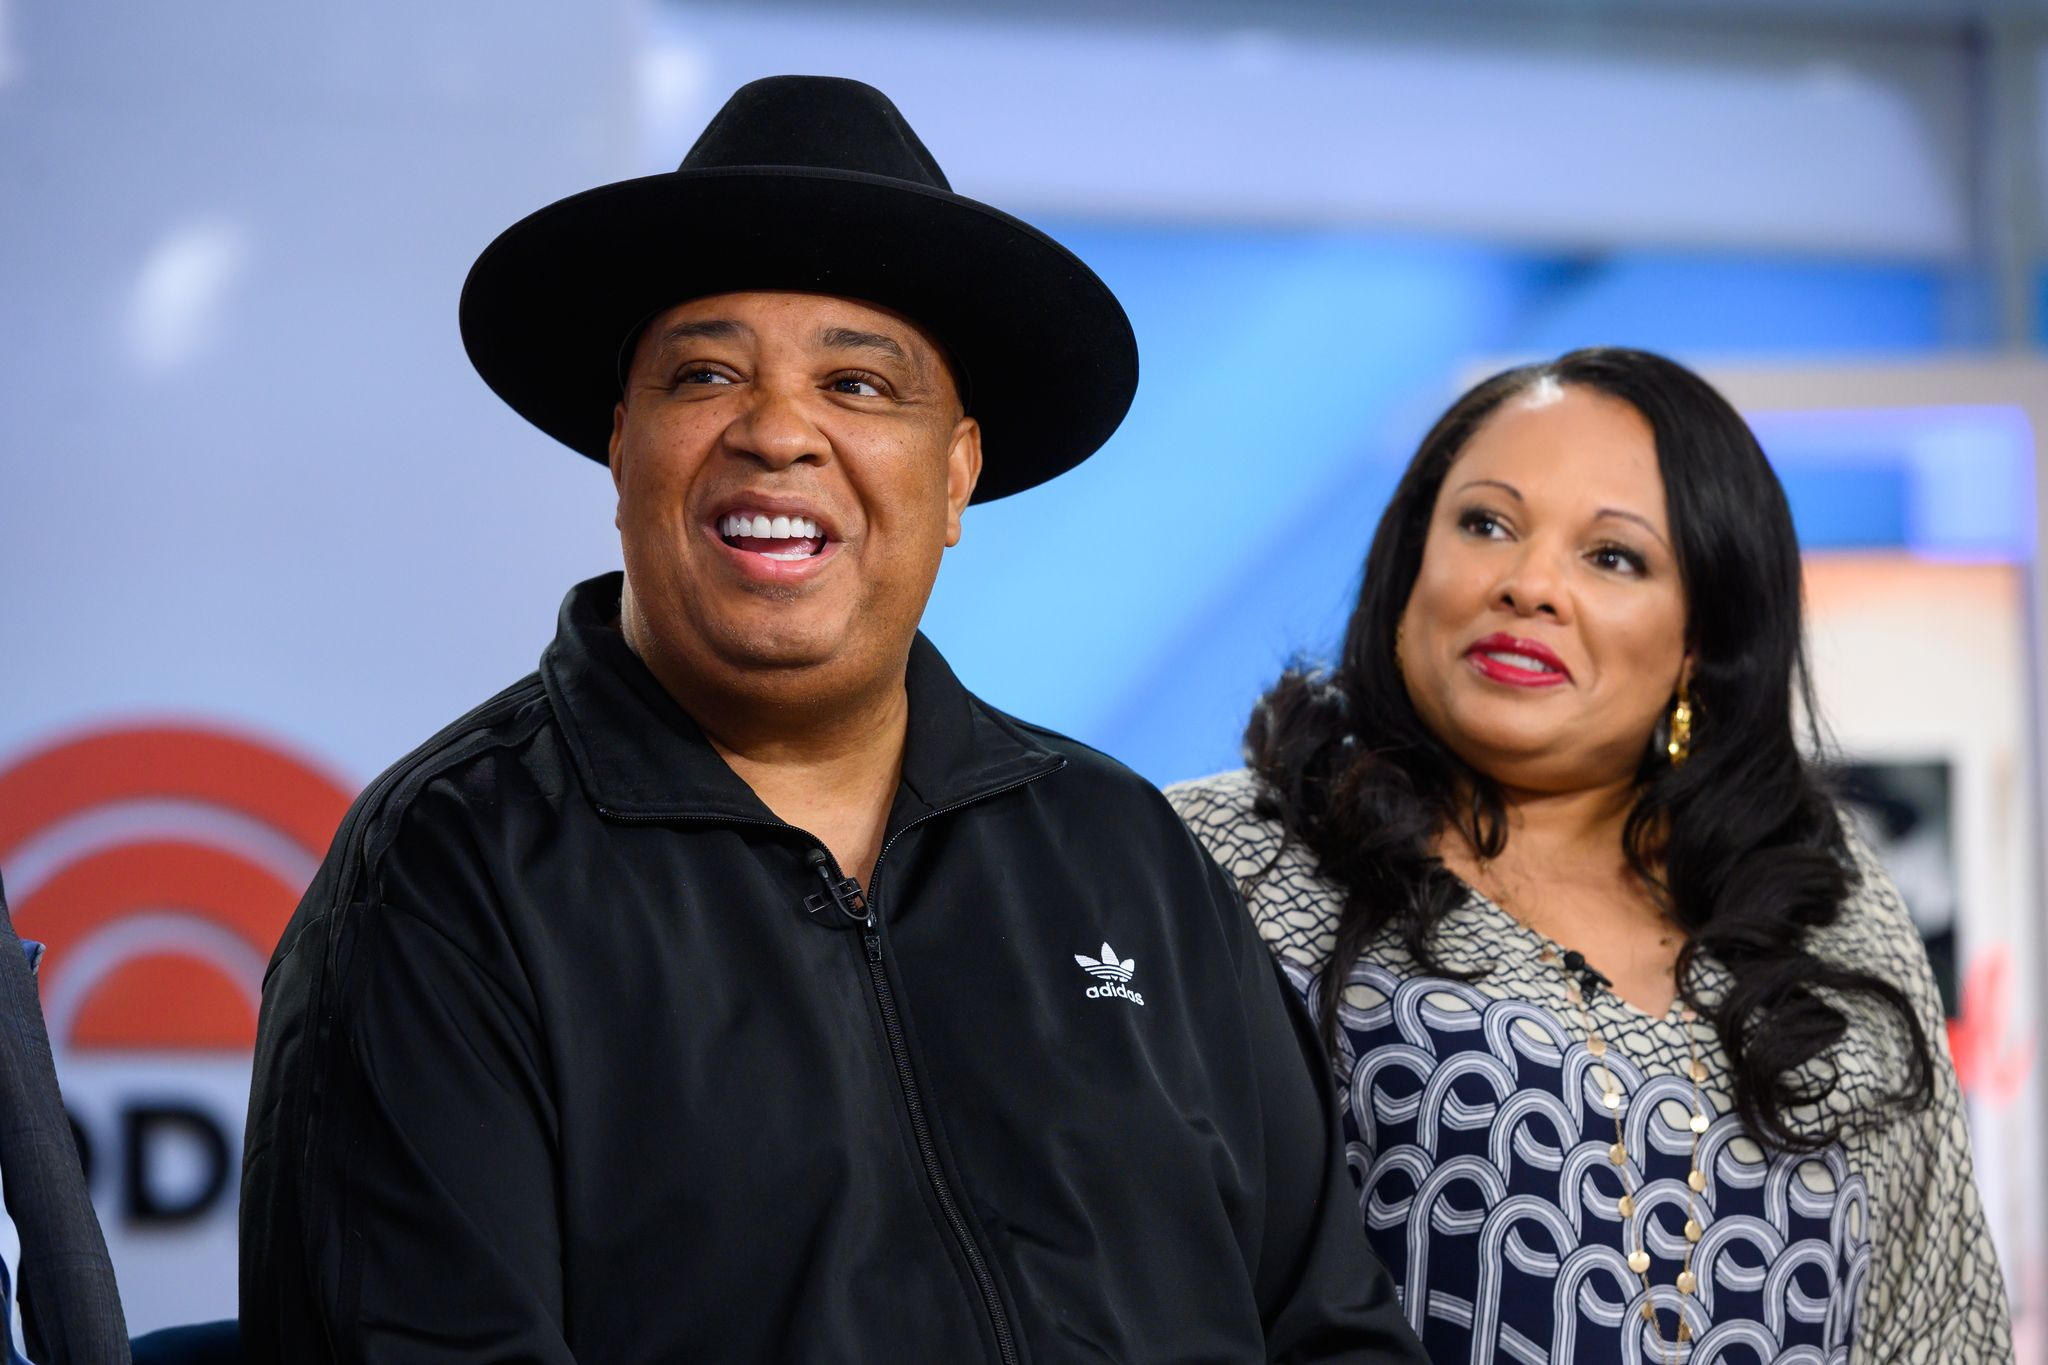 Justine Simmons and Rev Run on Tuesday, January 28, 2020. [unspecified location]   Photo: Getty Images